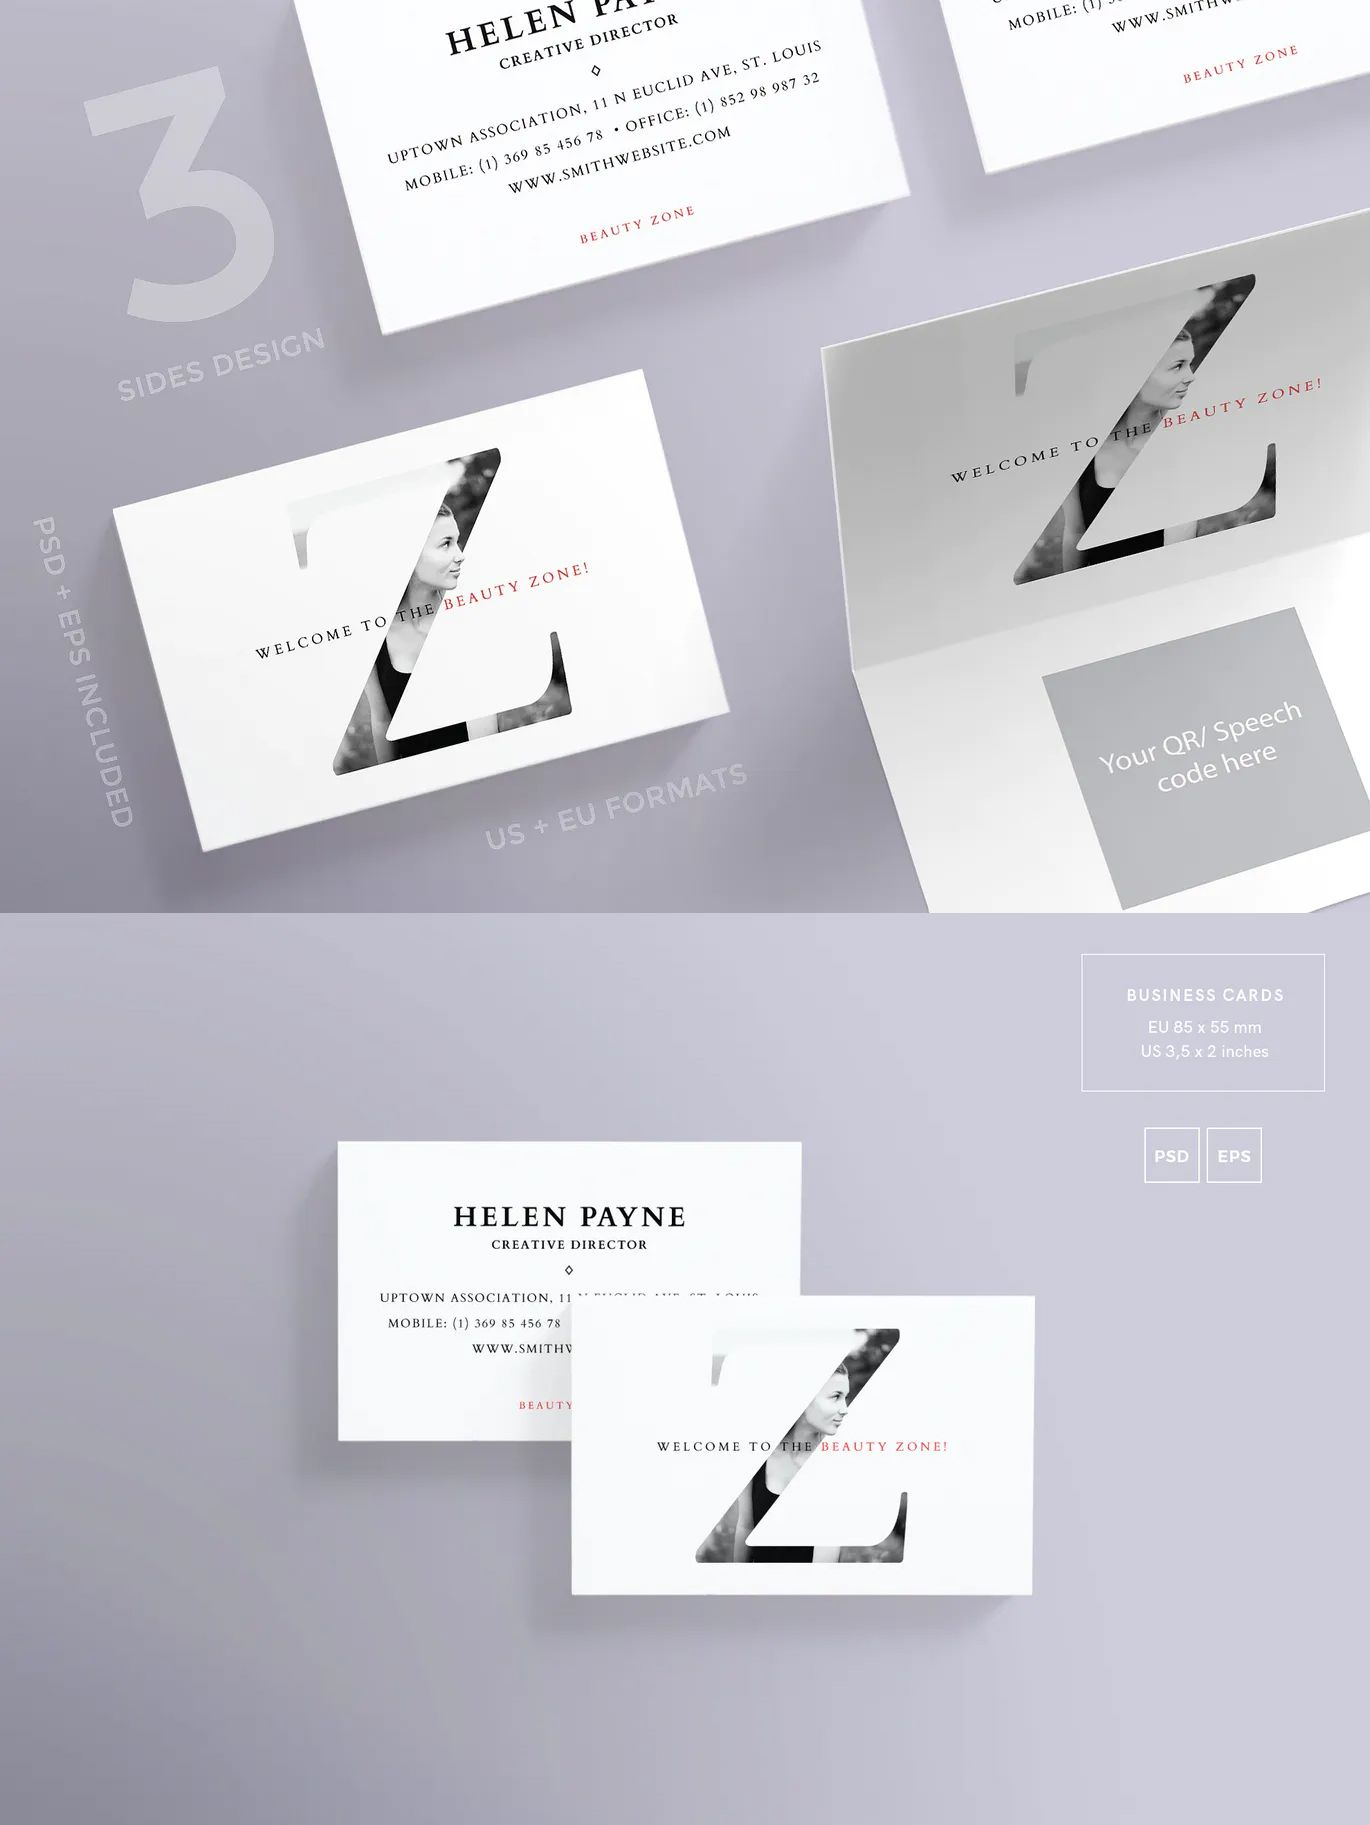 Beauty Salon Business Card Template By Ambergraphics On Envato Elements Beauty Salon Business Cards Beauty Business Cards Salons Salon Business Cards